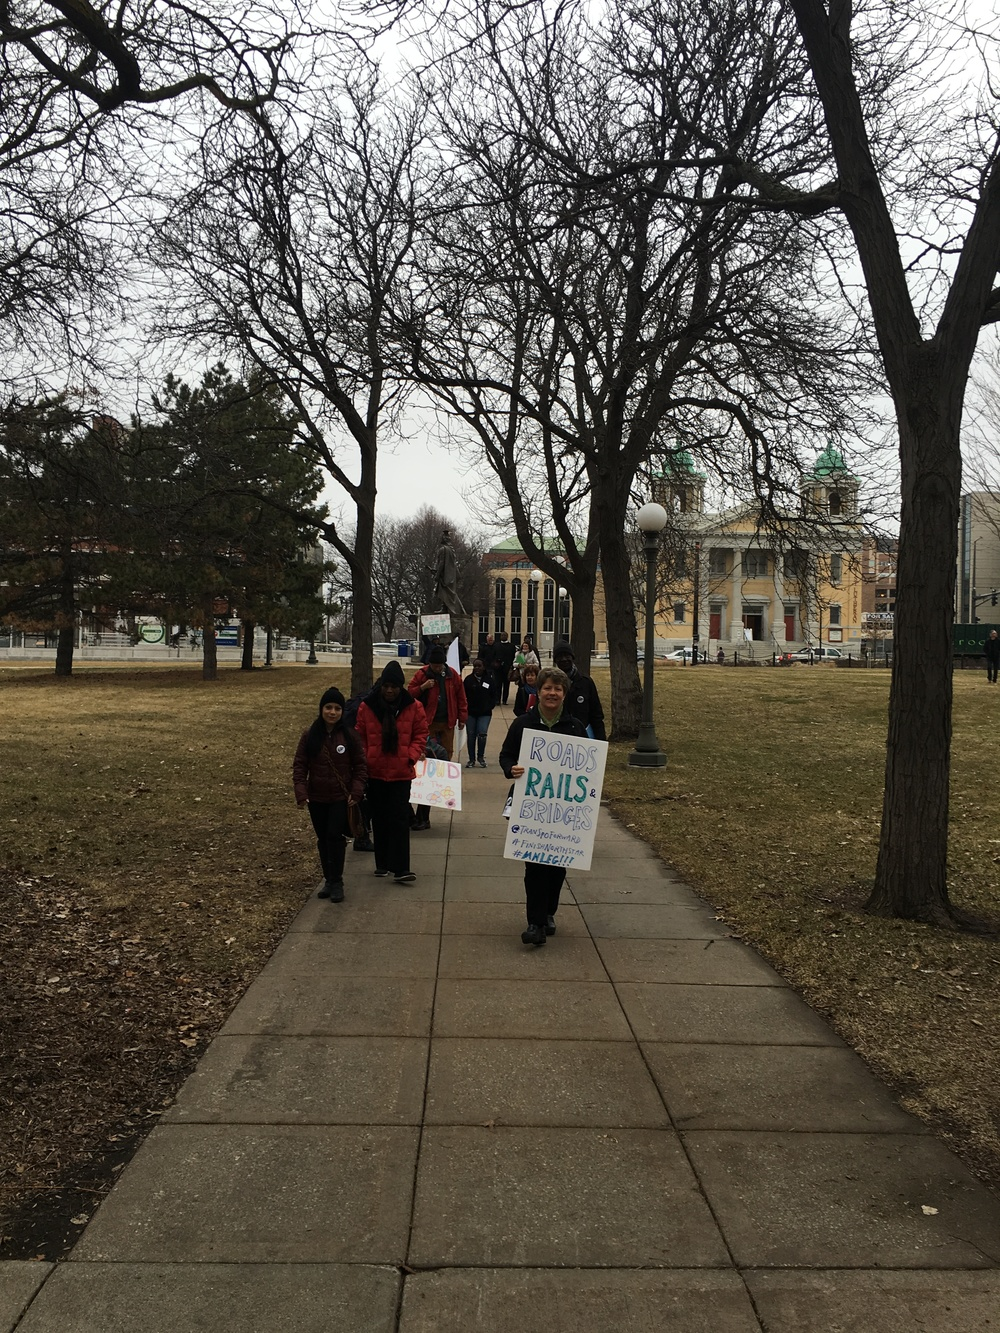 St.Cloud brings new Transpo message to Capitol! #roadsRAILbridges